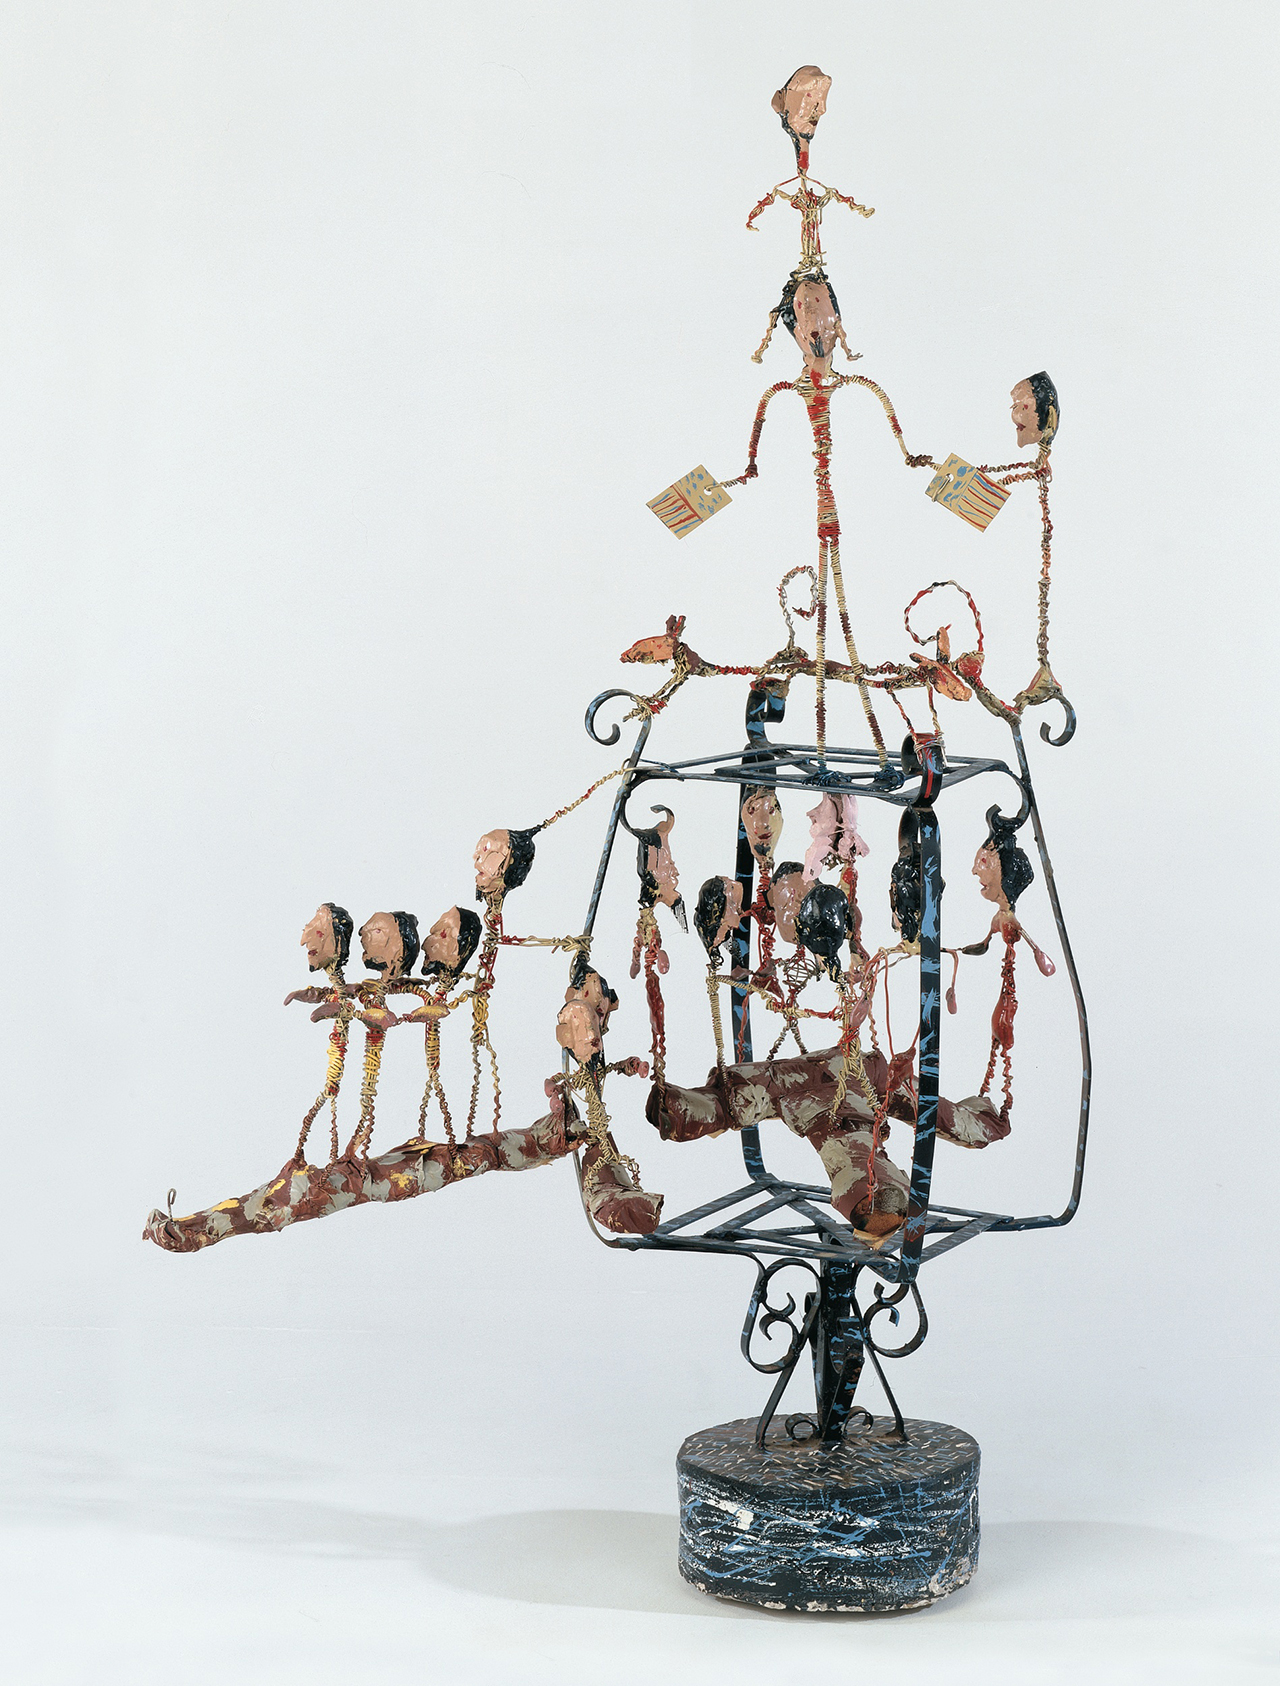 """Thornton Dial, """"Freedom Marchers"""" (1987), wire, steel, tape, wire screen, packing foam, concrete, enamel, and Splash Zone compound, 25.5 x 37.25 x 25.5 inches (photo by Stephen Pitkin/Pitkin Studio, courtesy Souls Grown Deep Foundation) (click to enlarge)"""